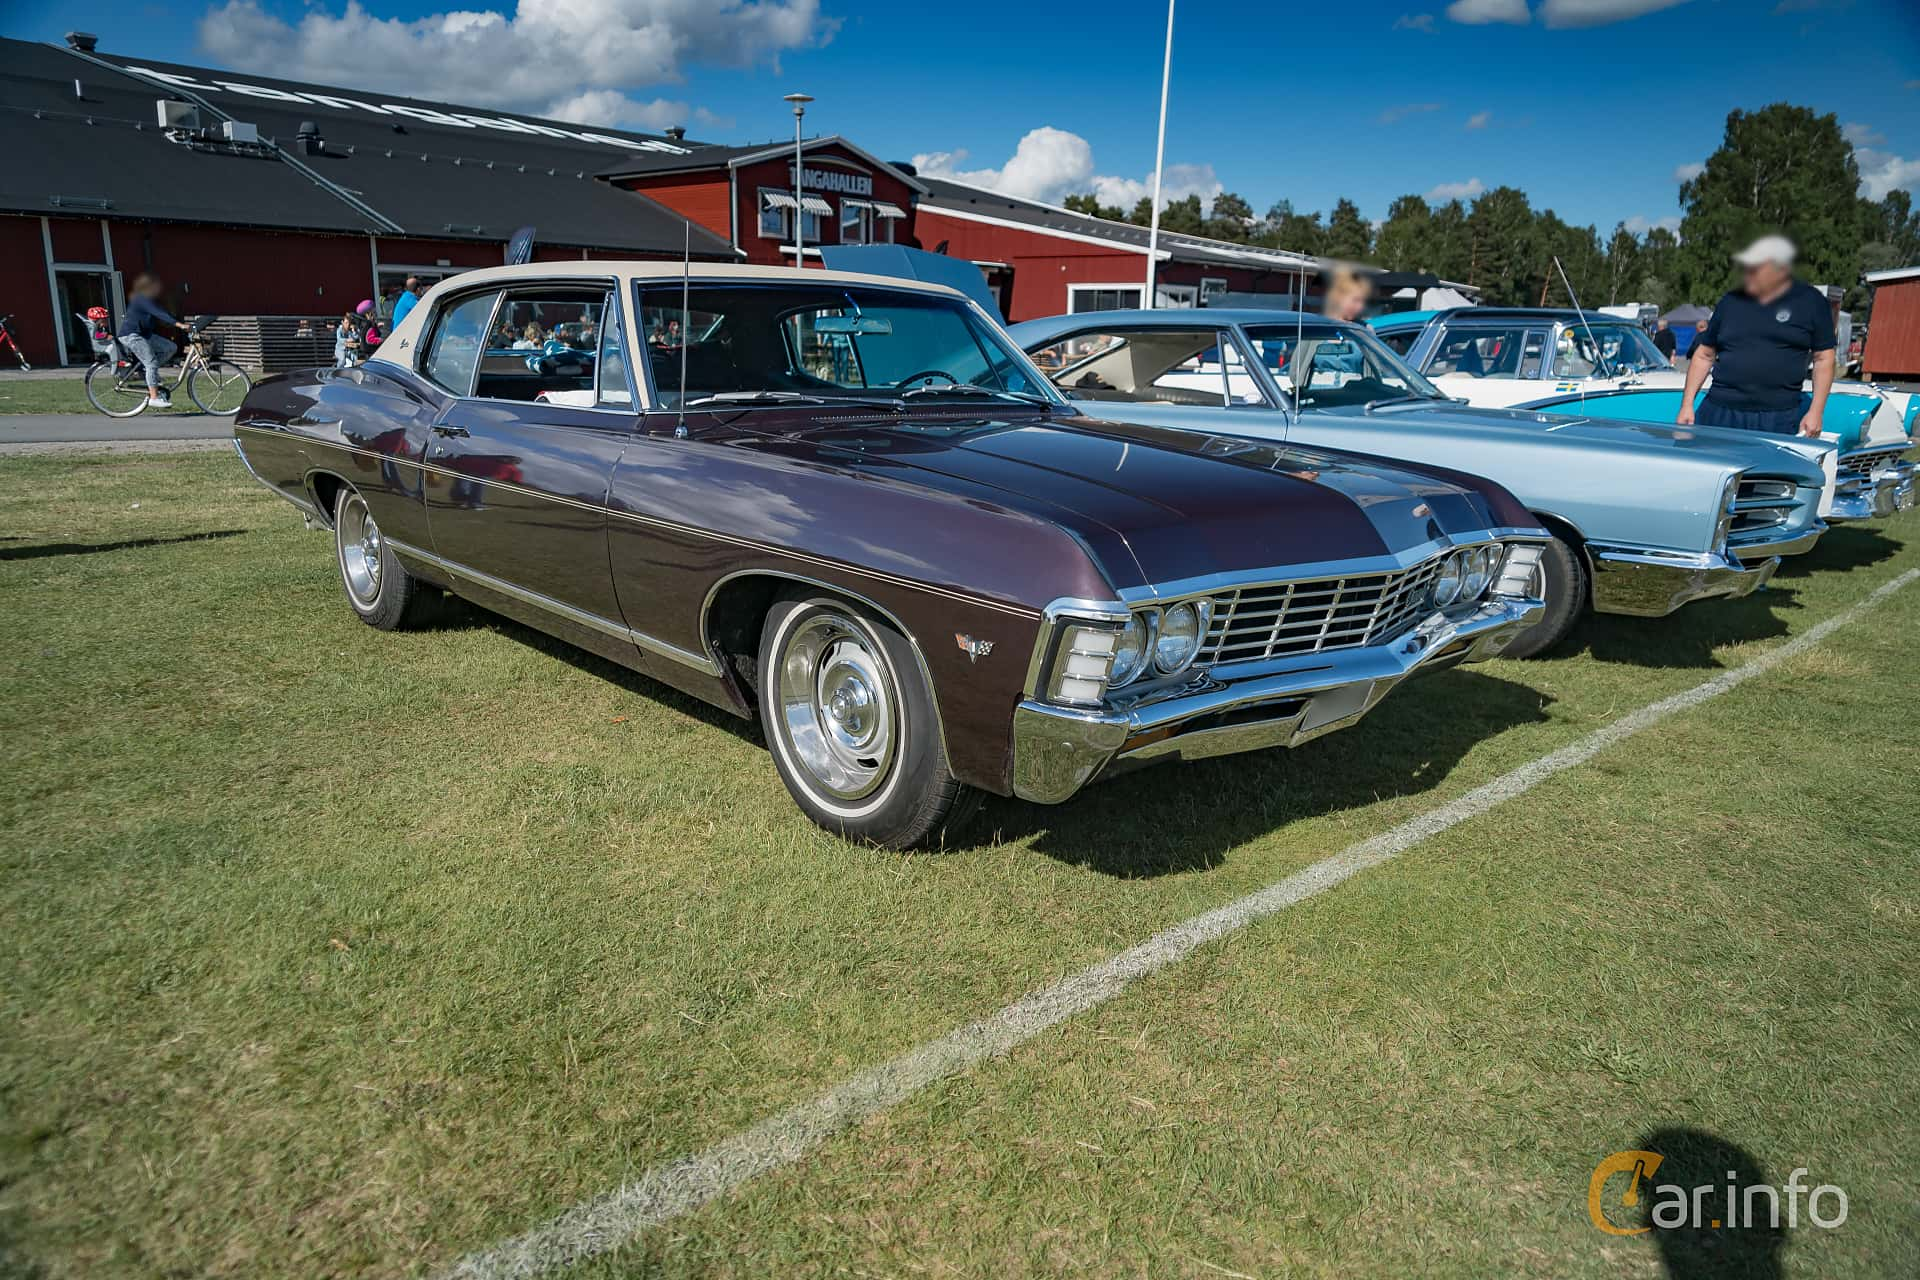 3 images of chevrolet caprice sport coup 46 v8 powerglide 198hp frontside of chevrolet caprice sport coup 46 v8 powerglide 198ps 1967 at publicscrutiny Choice Image